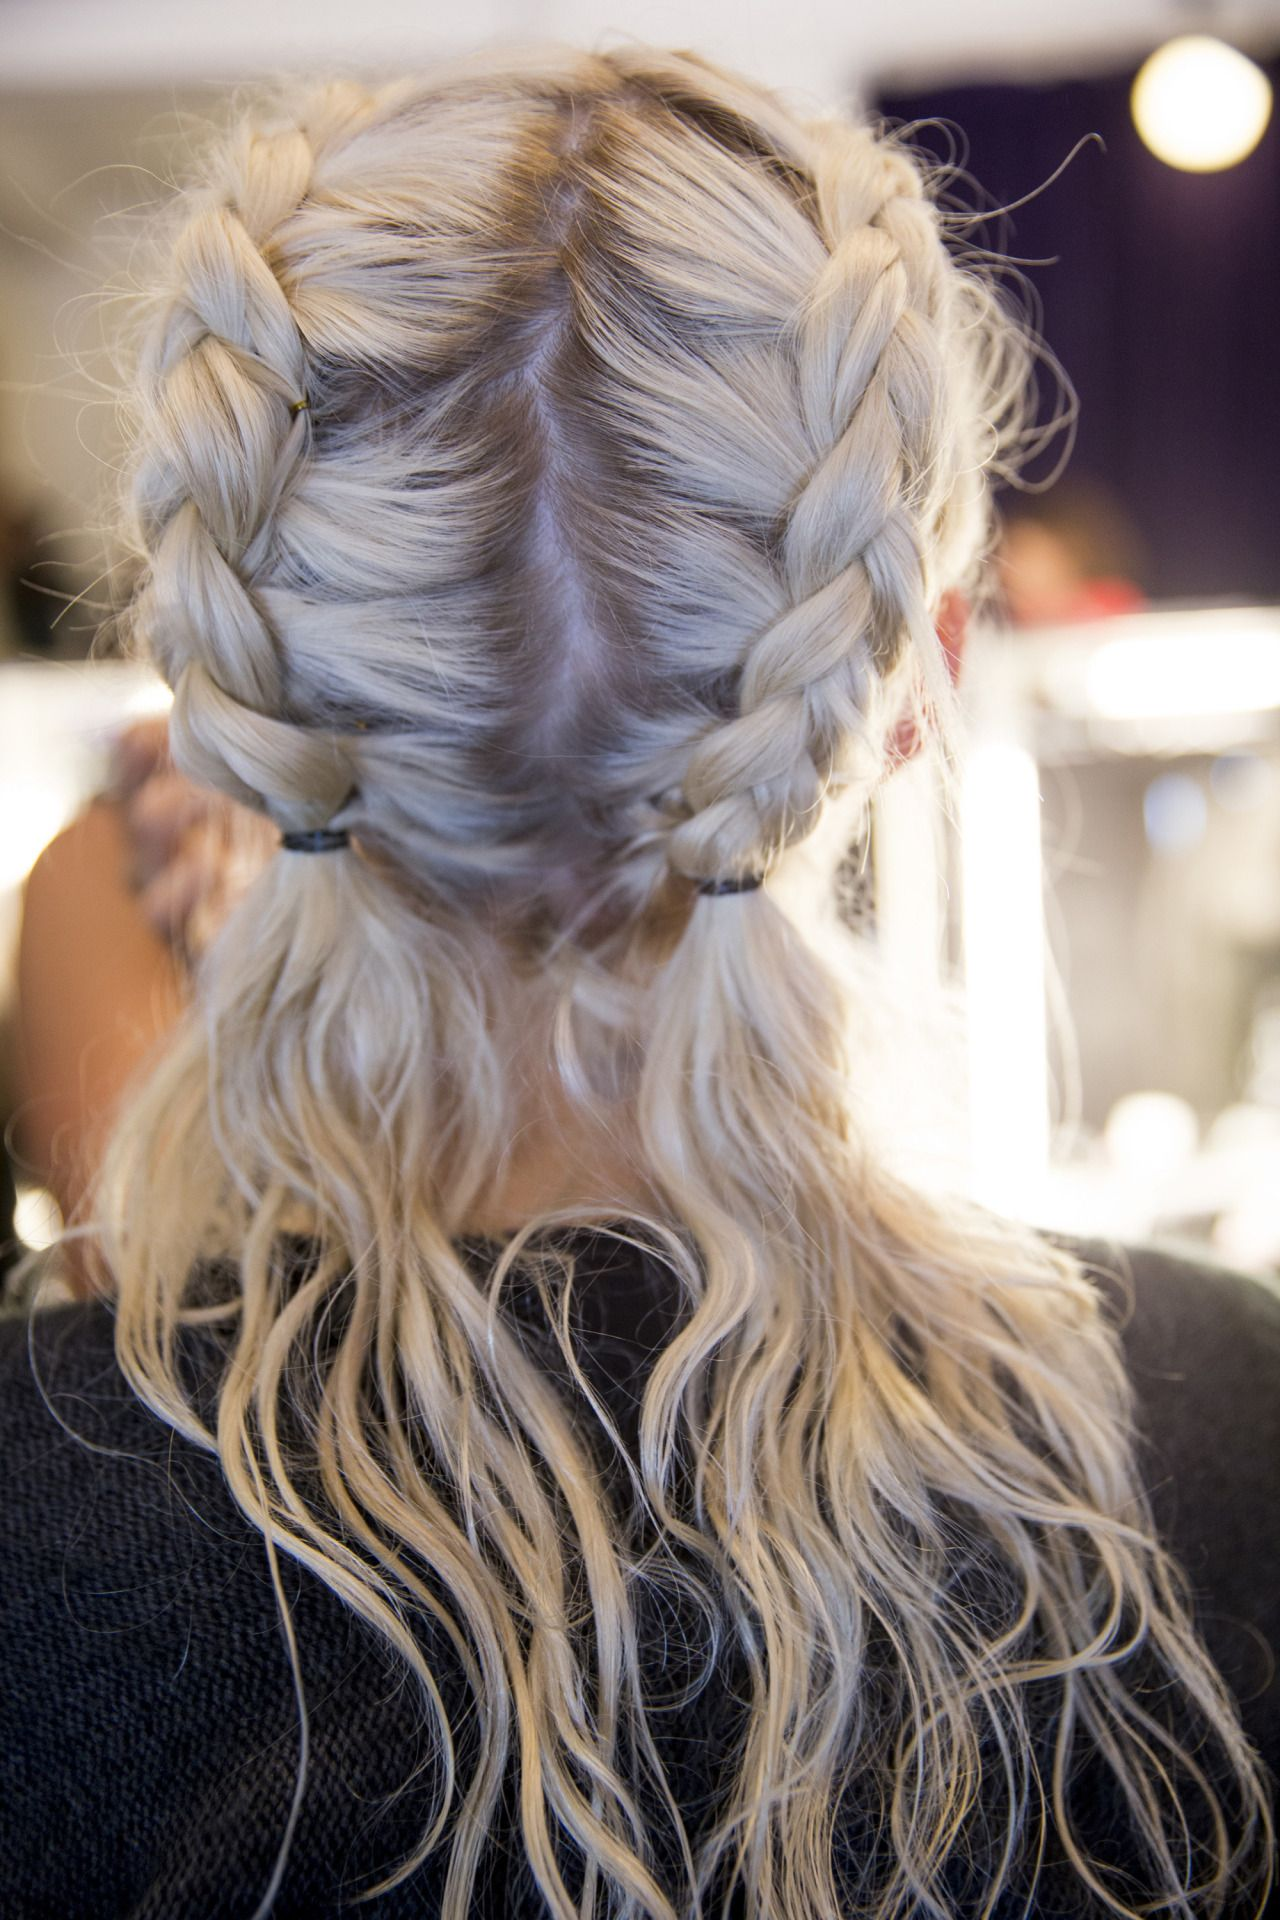 Braids Hairstyles tumblr step by step pictures forecast to wear for winter in 2019